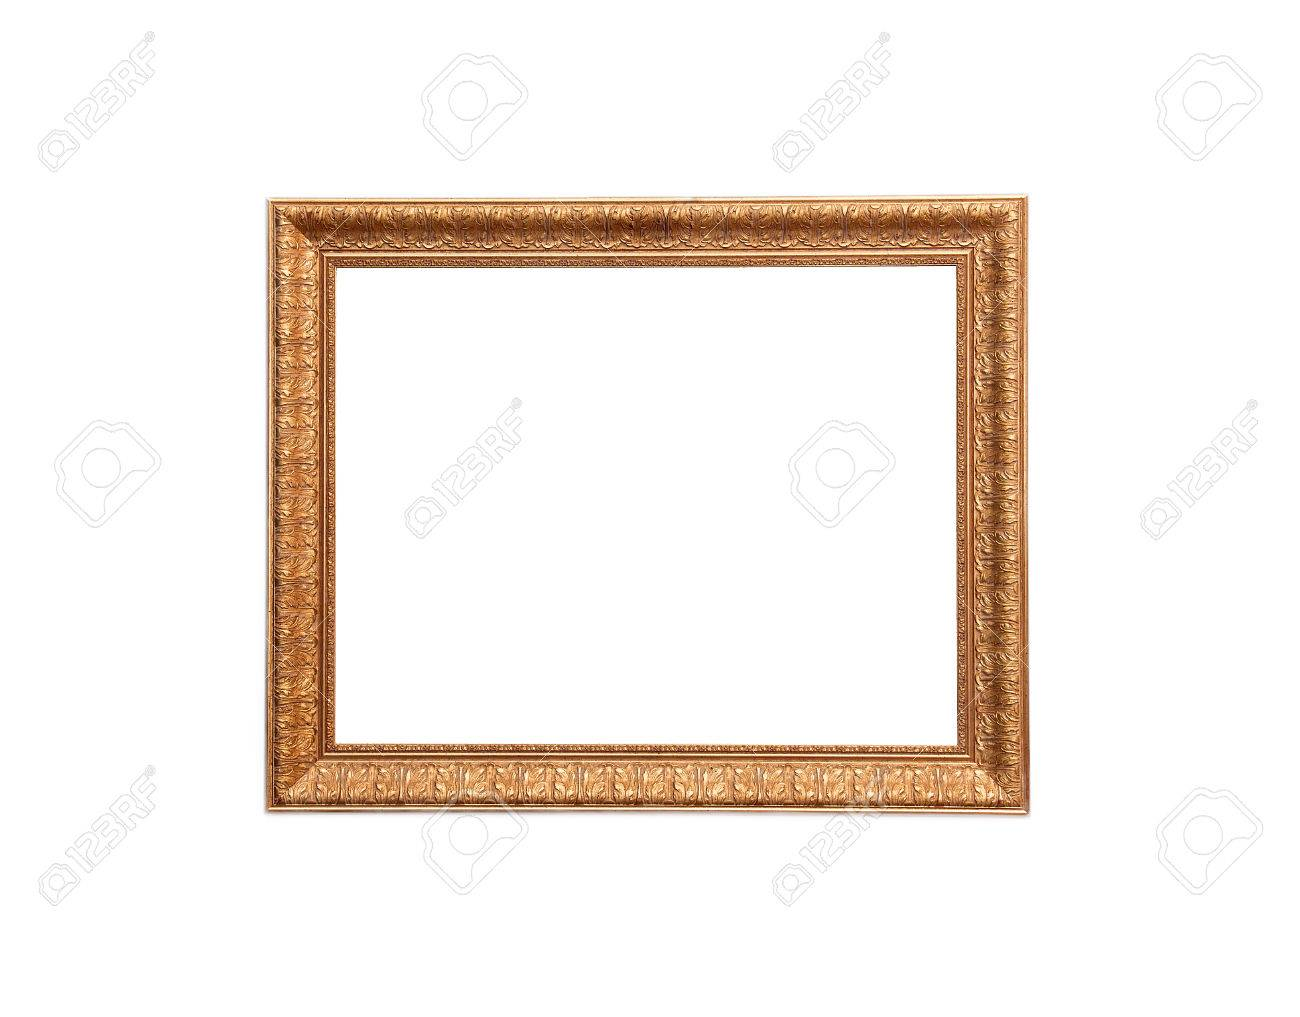 A modern wood frame with classic carved leaves design on white background - 43271170